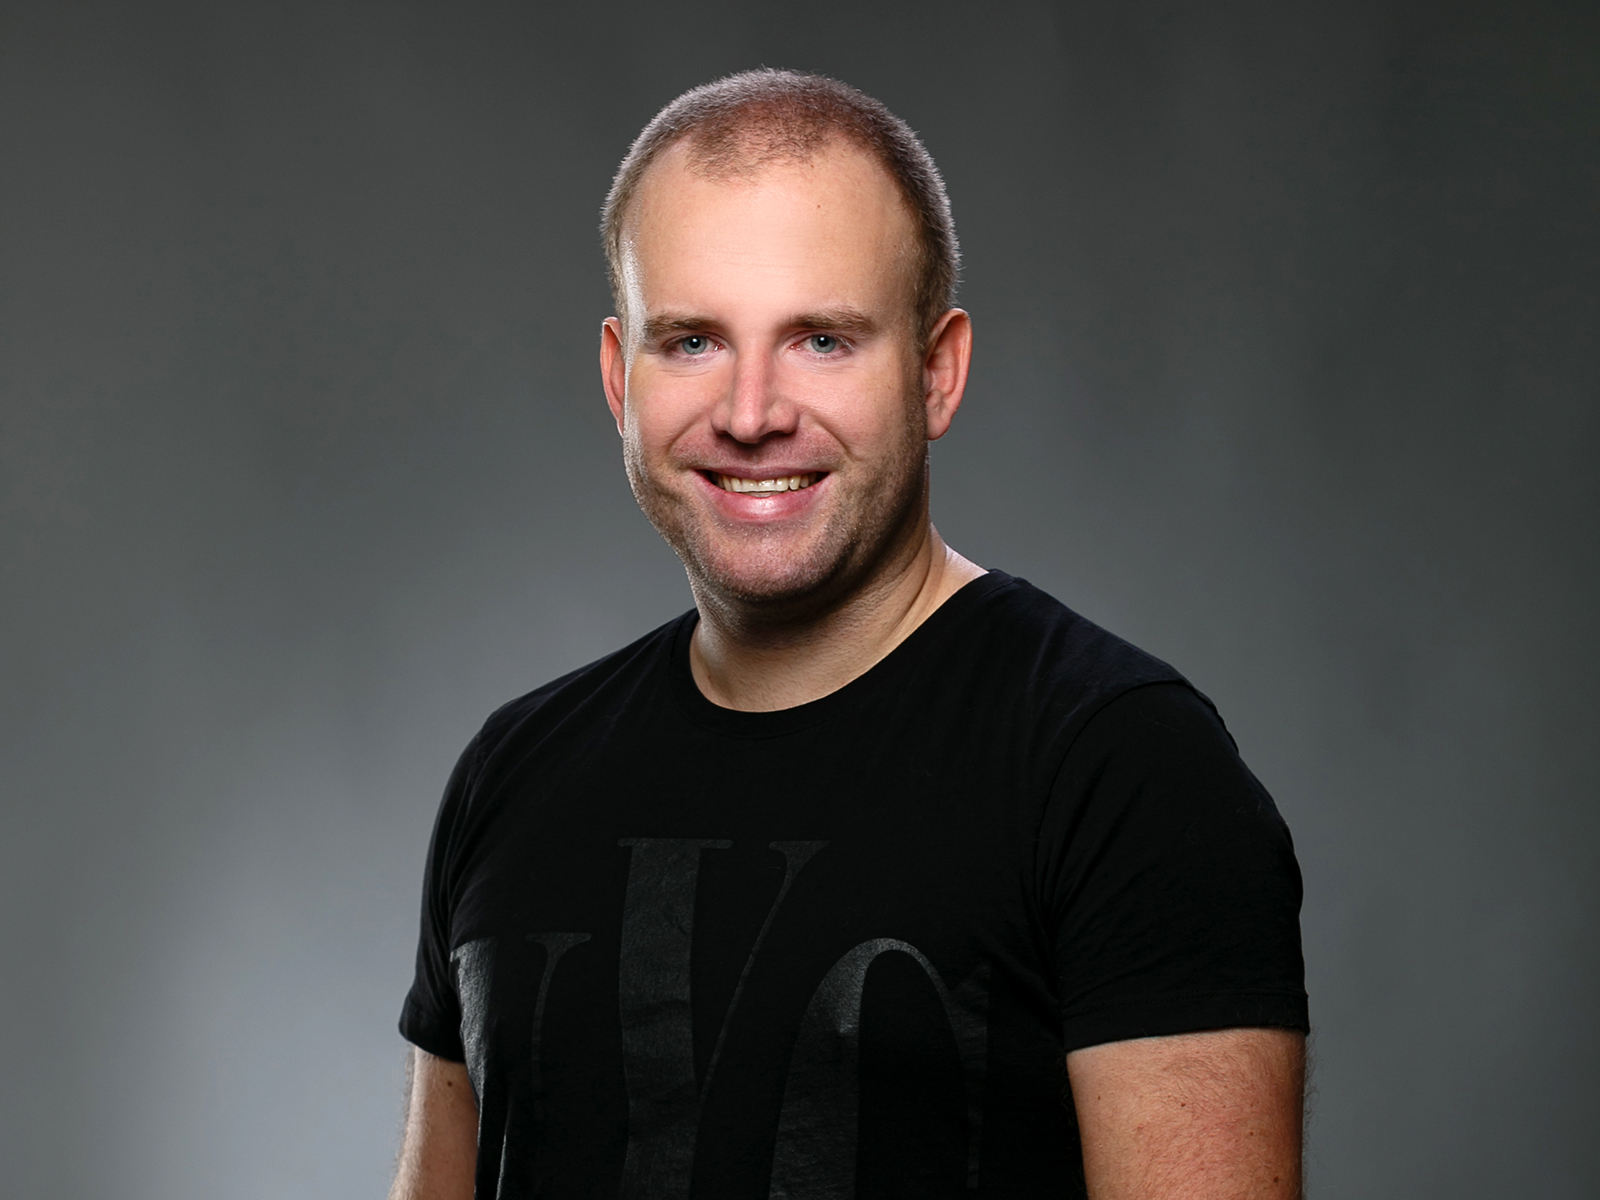 Martin Skála, the webmaster of QueenConcerts